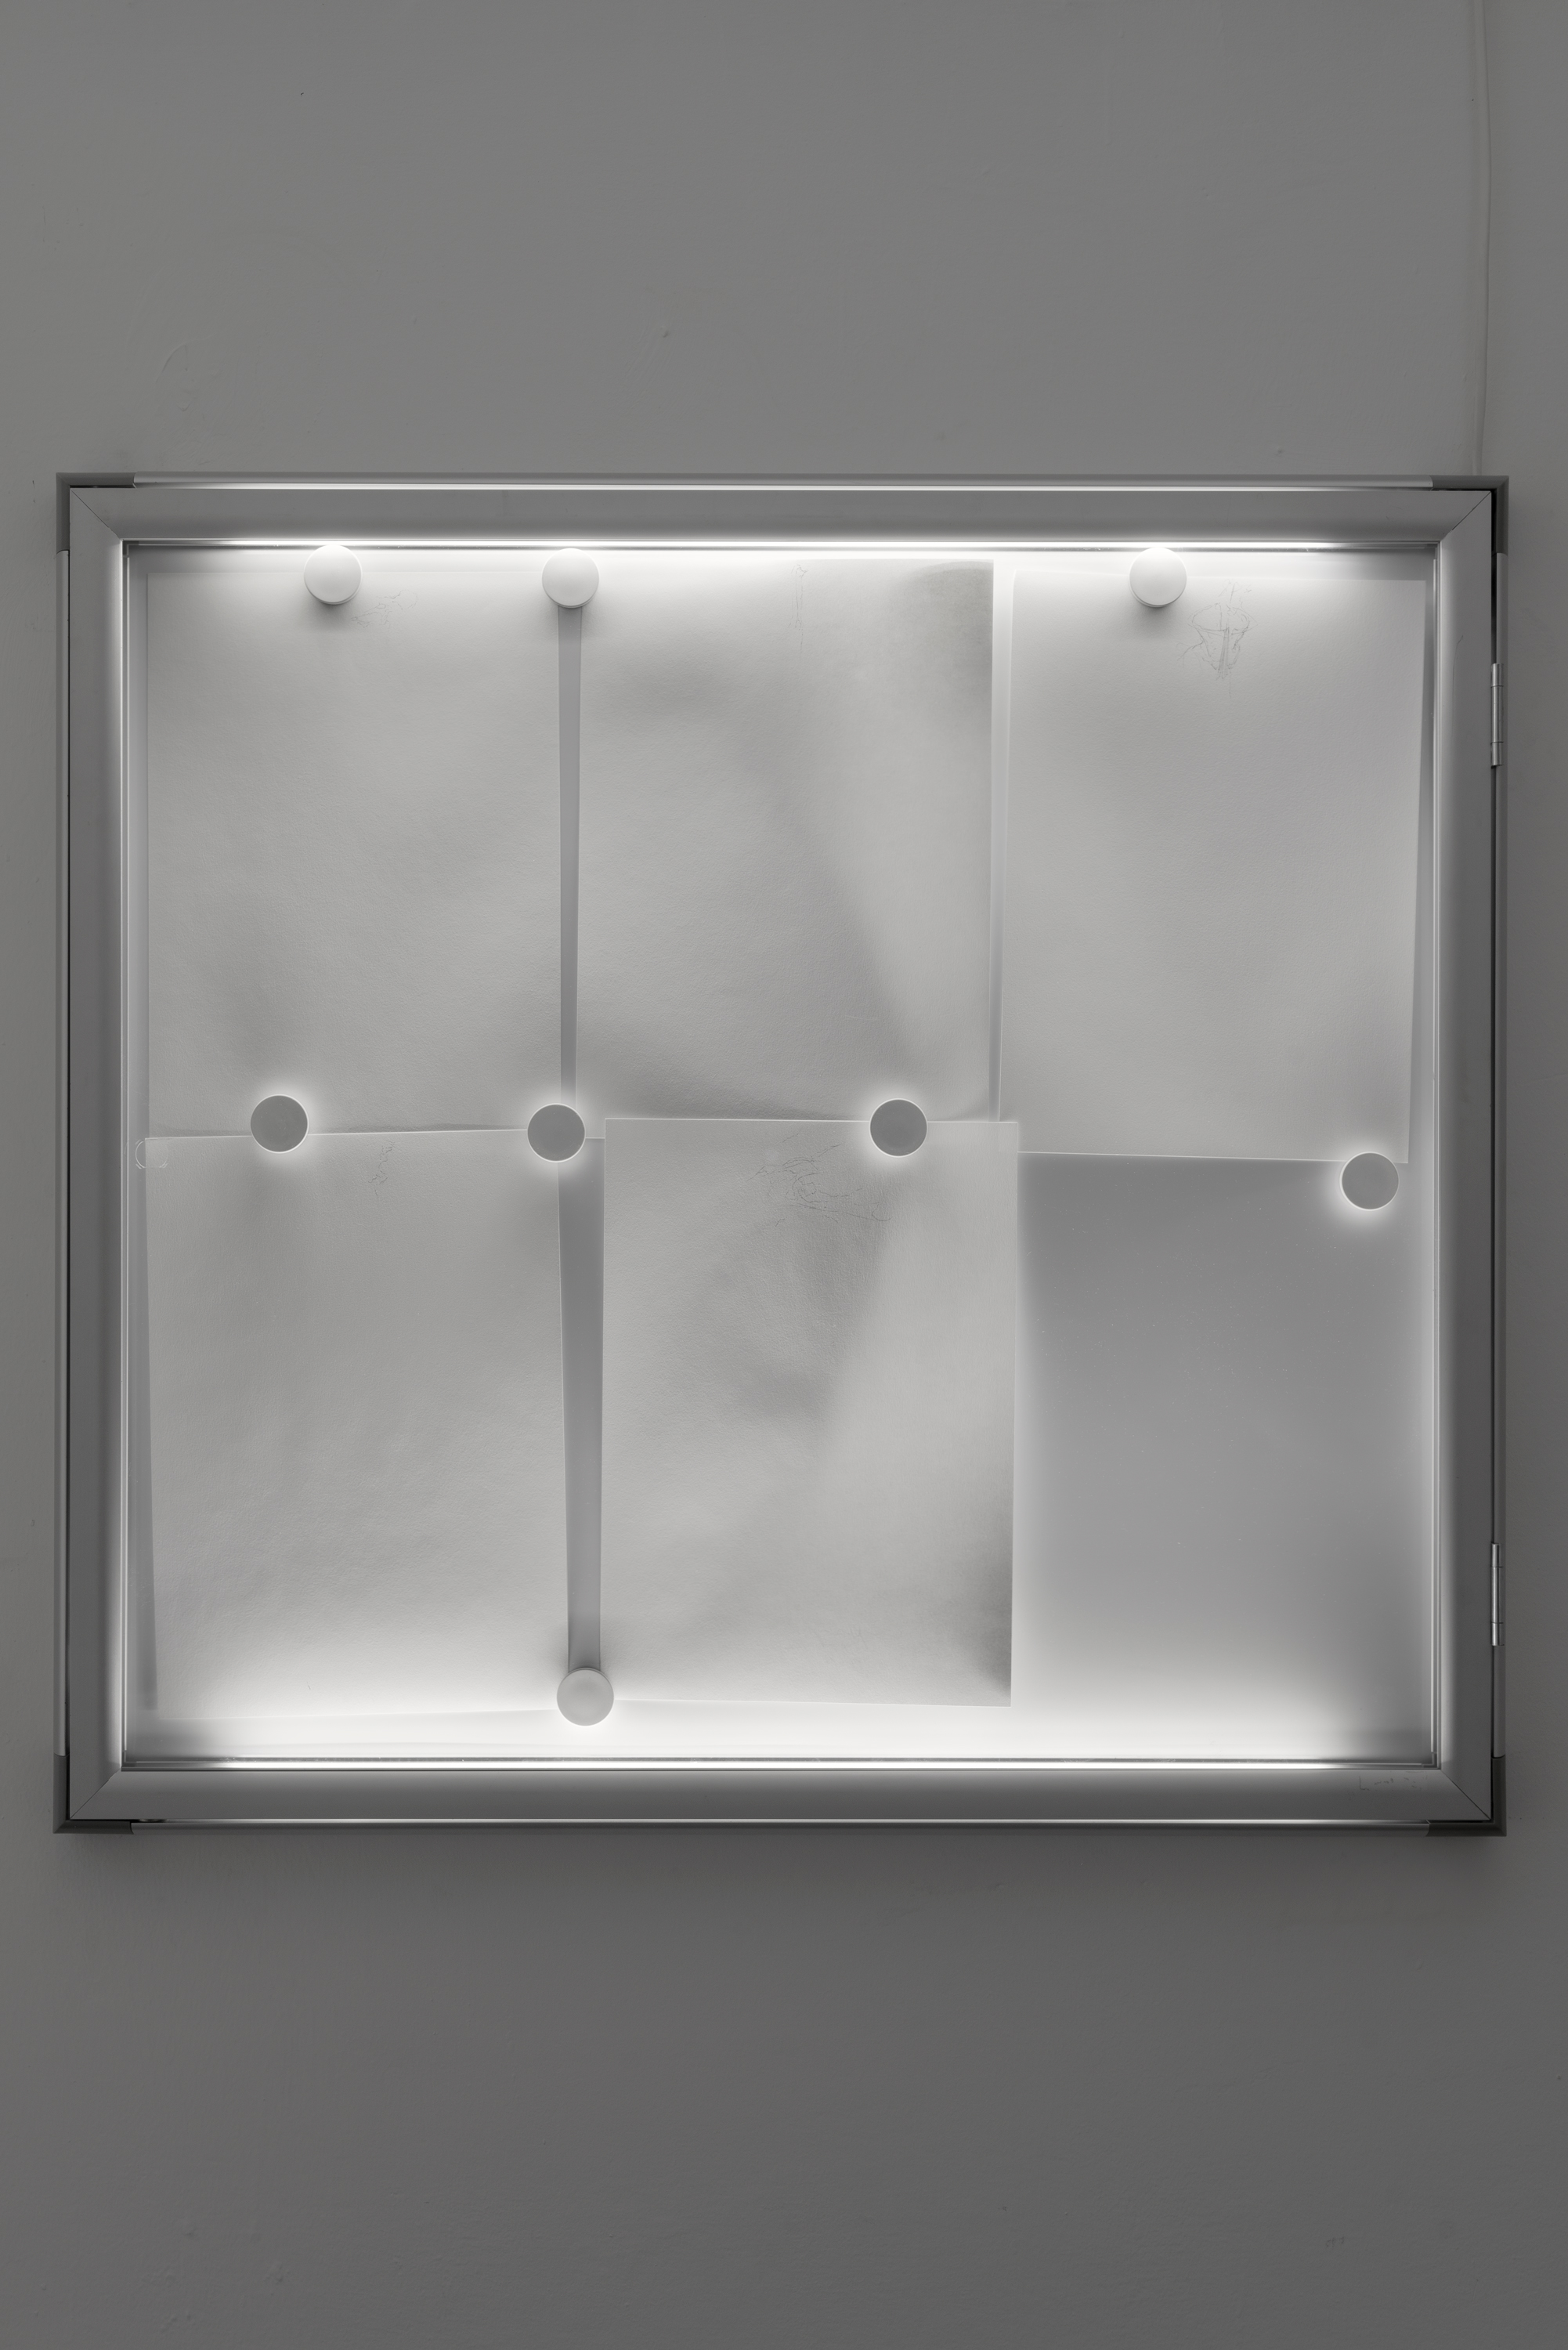 Philip Seibel,  Untitled , 2016-2019, pencil on A4 paper, magnets, display case, LED lights